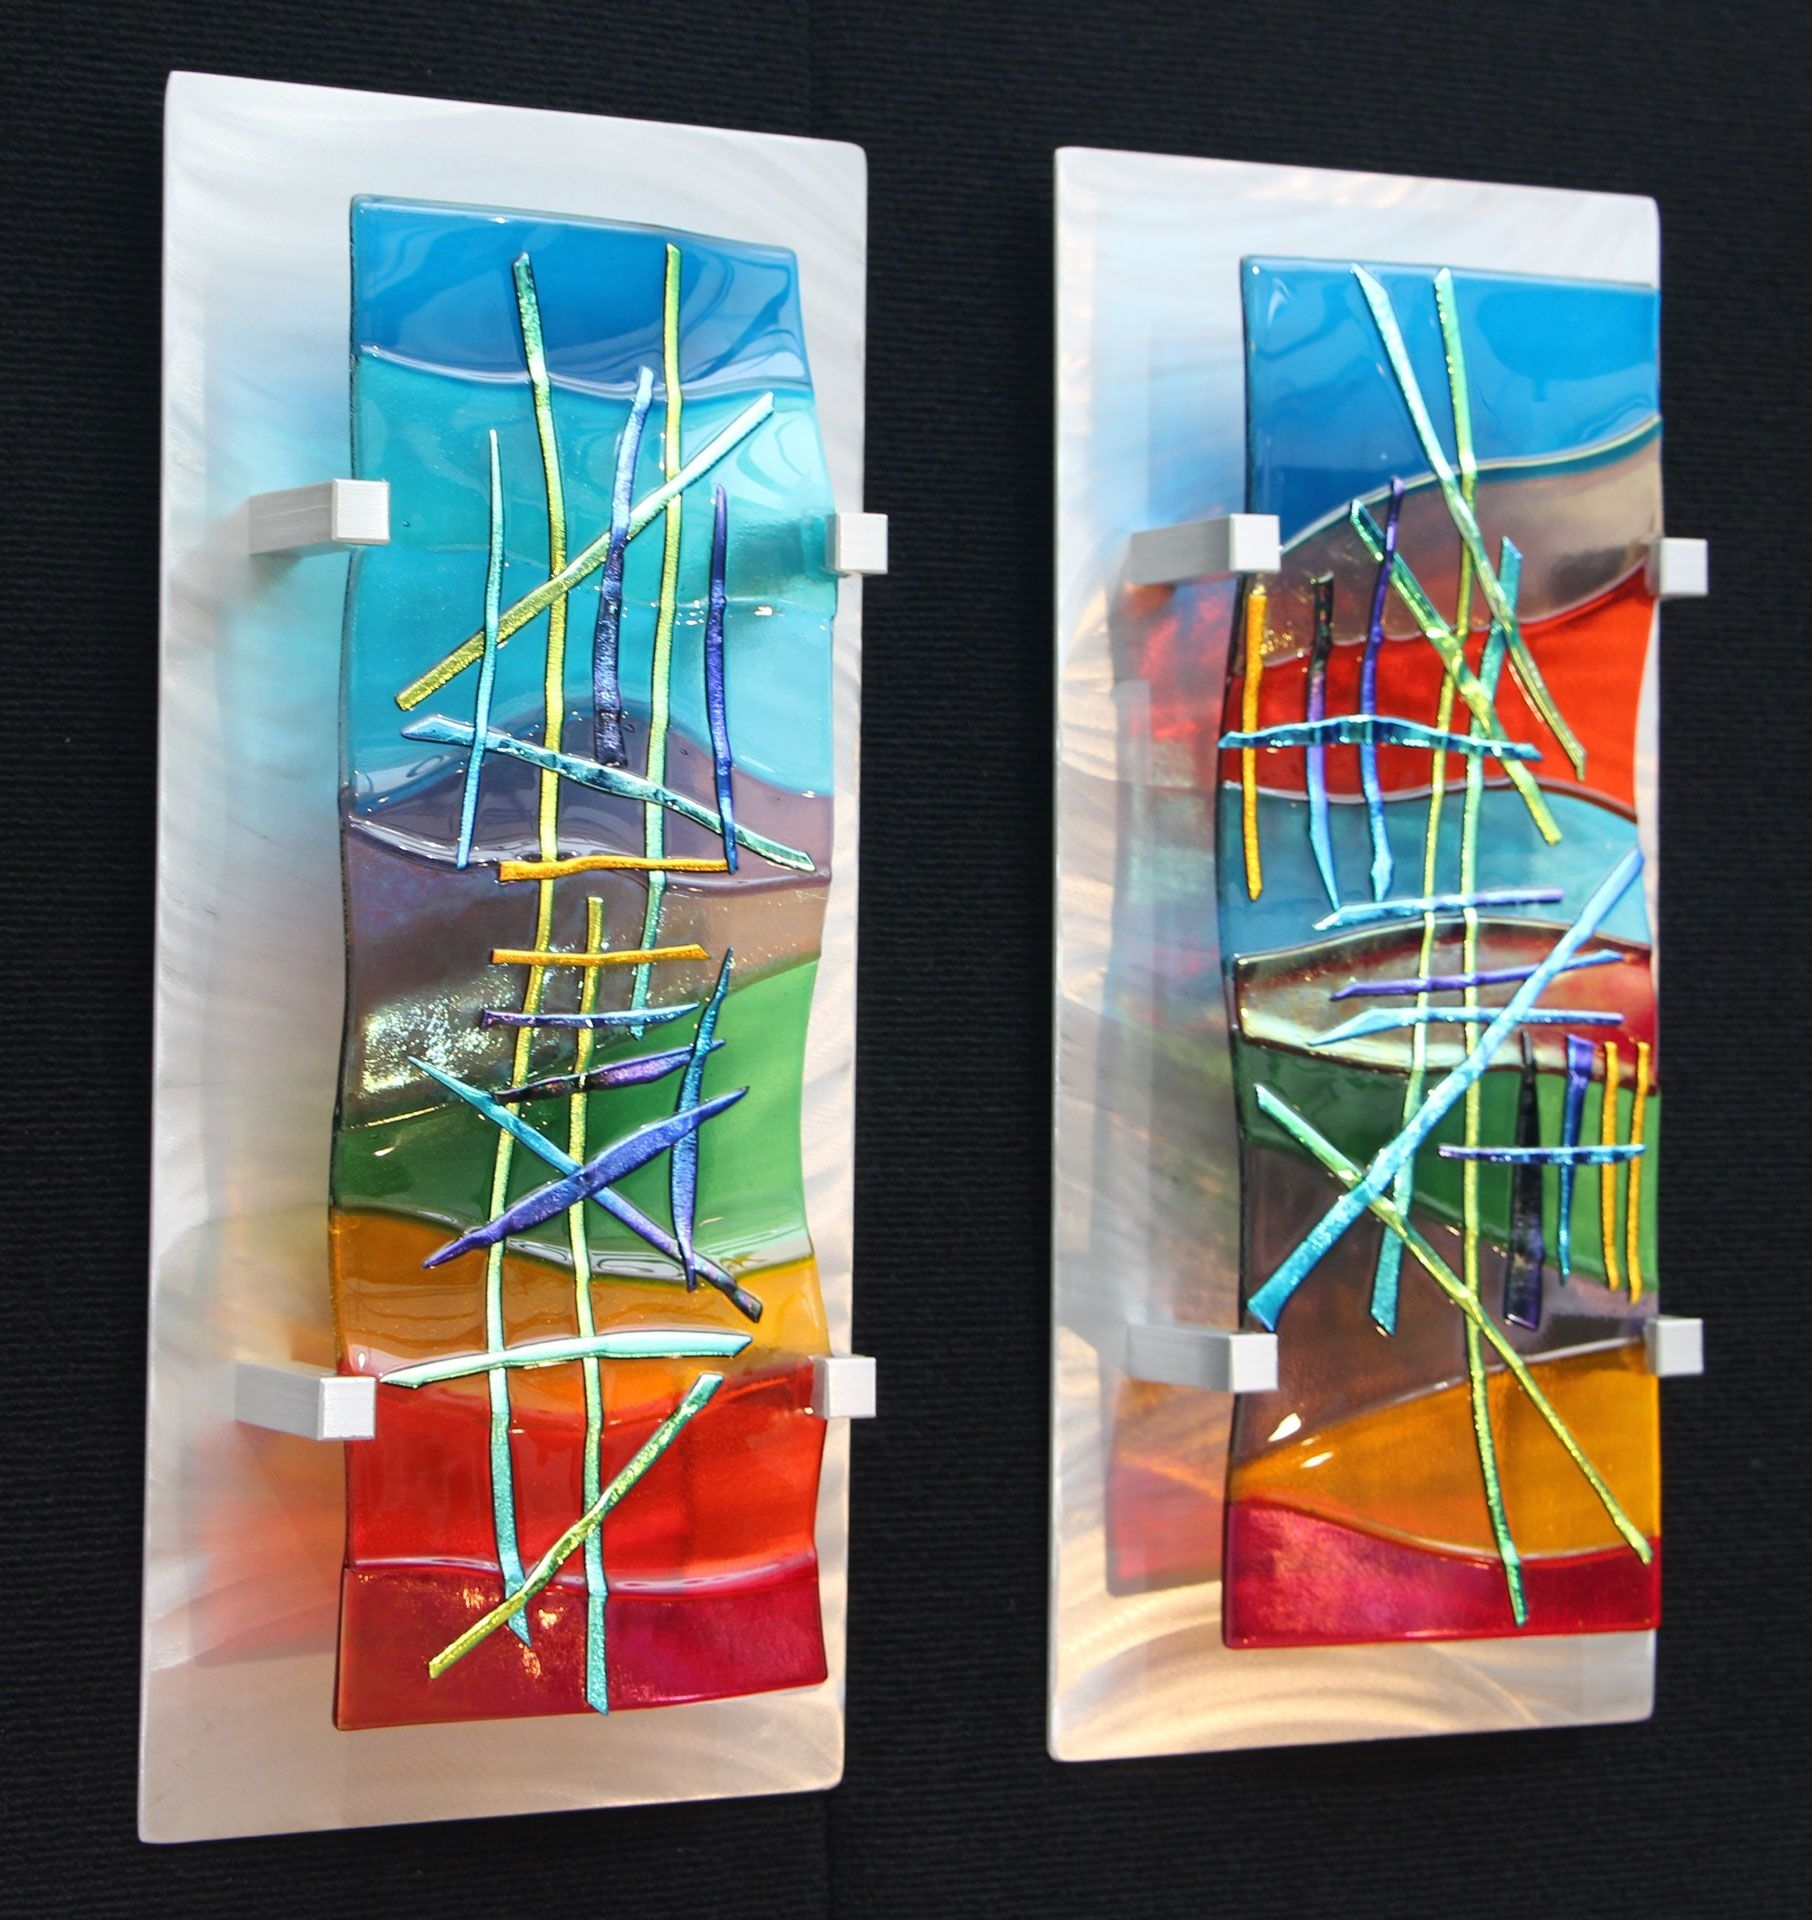 Fused Glass Wall Artfrank Thompson | Glass Ideas | Pinterest With Best And Newest Glass Wall Art (Gallery 3 of 15)